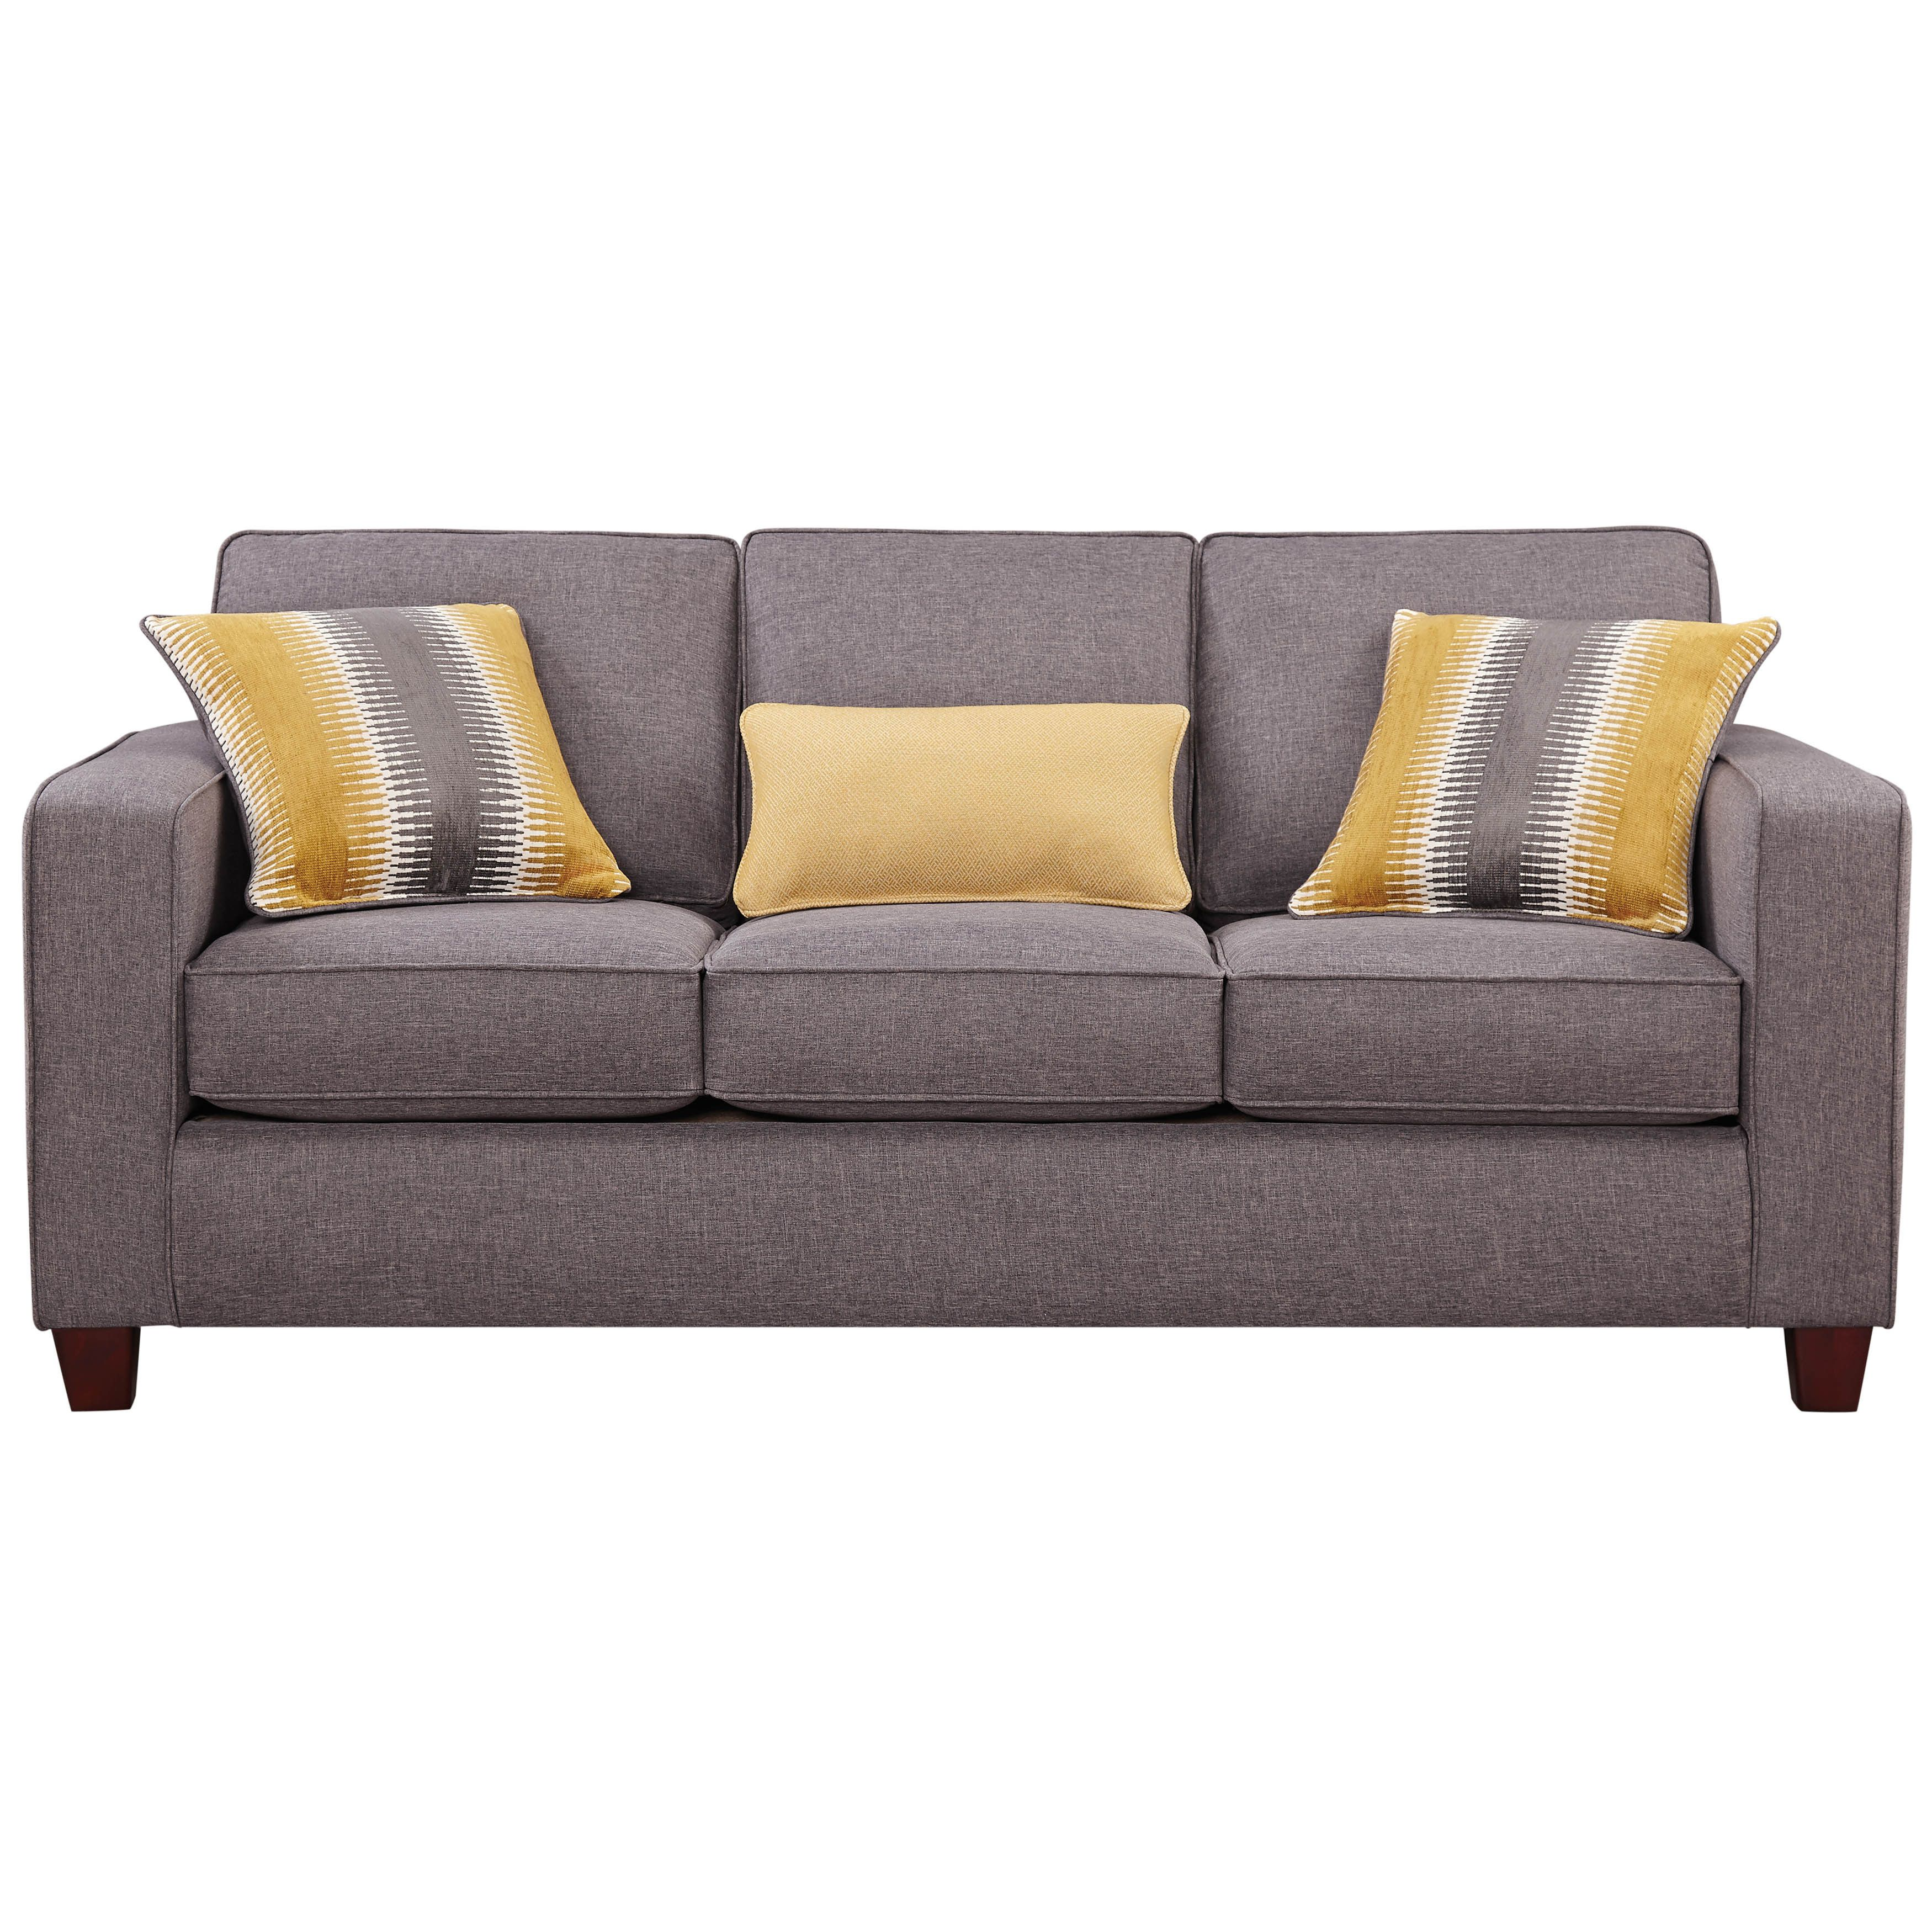 The Maxwell sofa uses charcoal grey for a stunning backdrop to